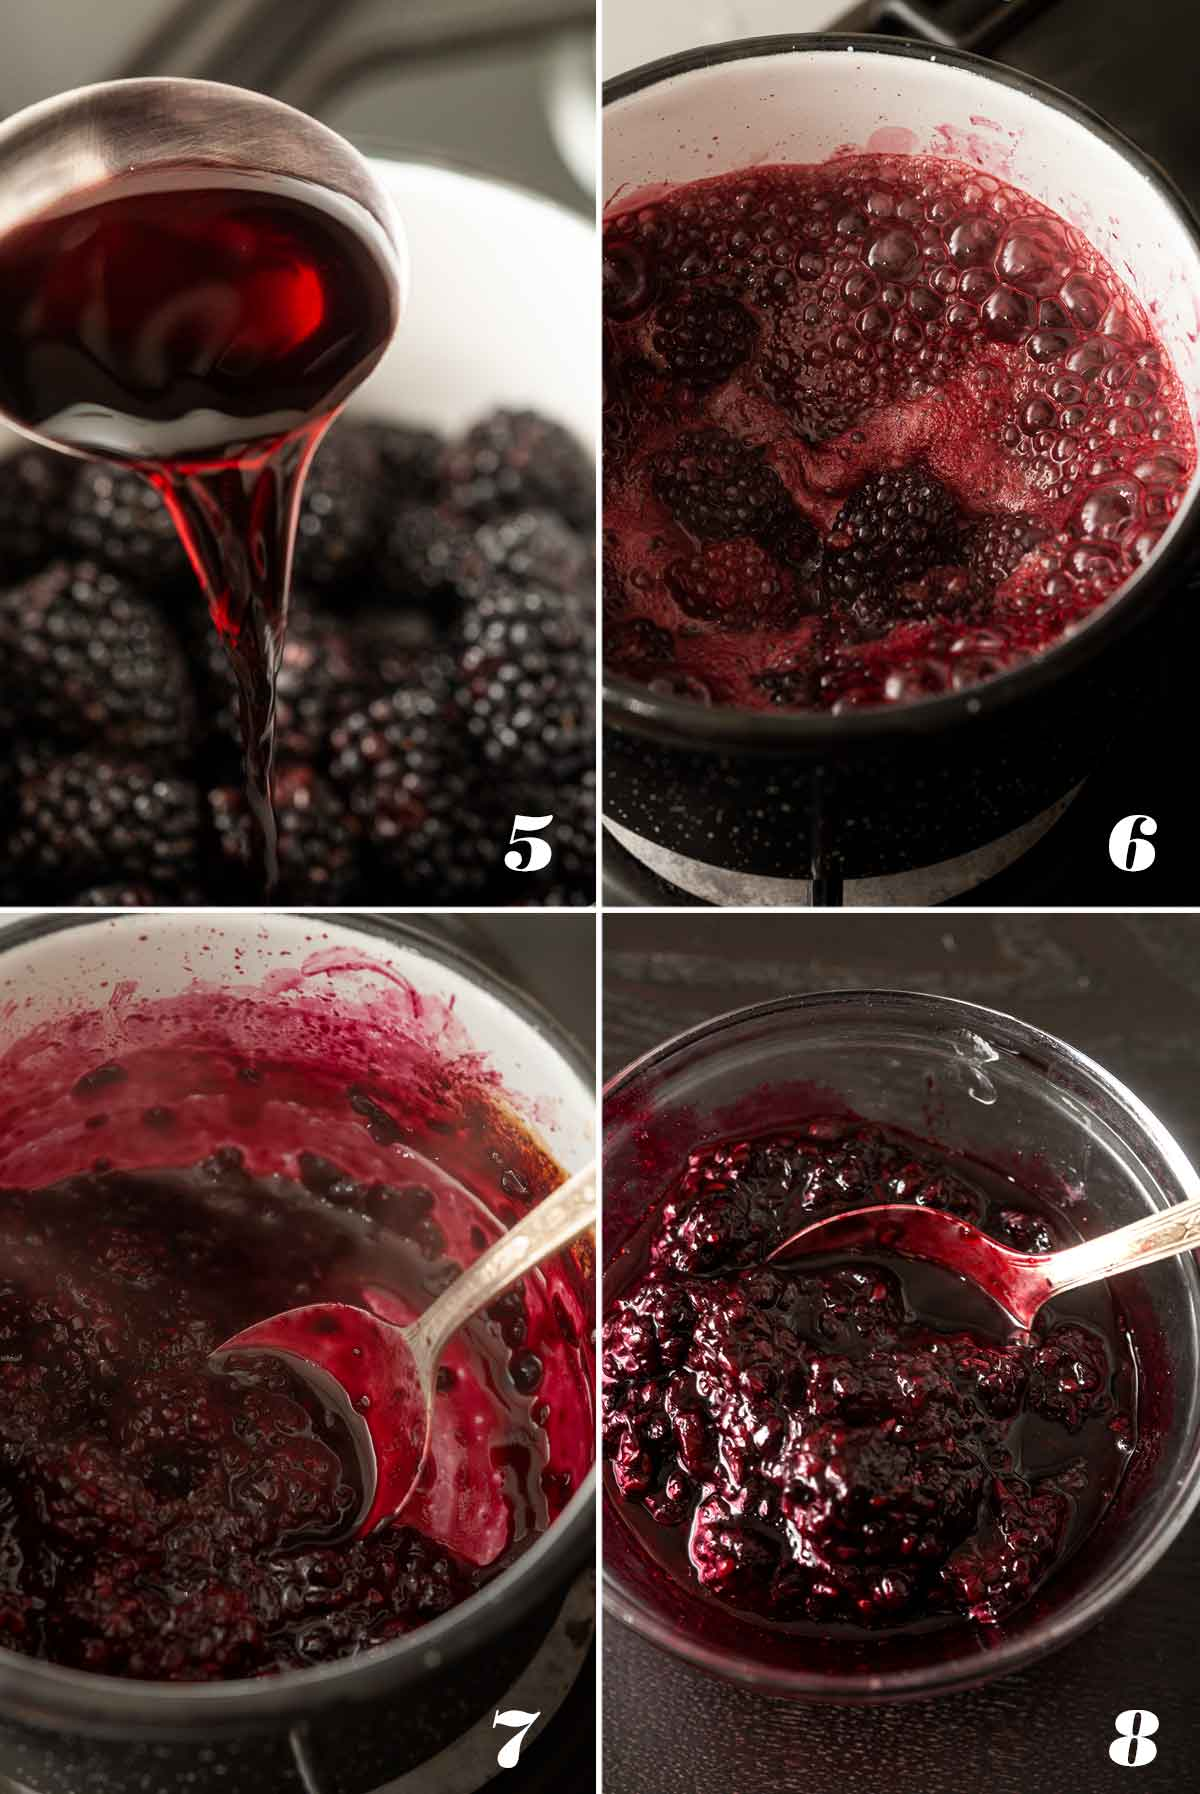 A collage of 4 numbered images showing how to make berry sauce.